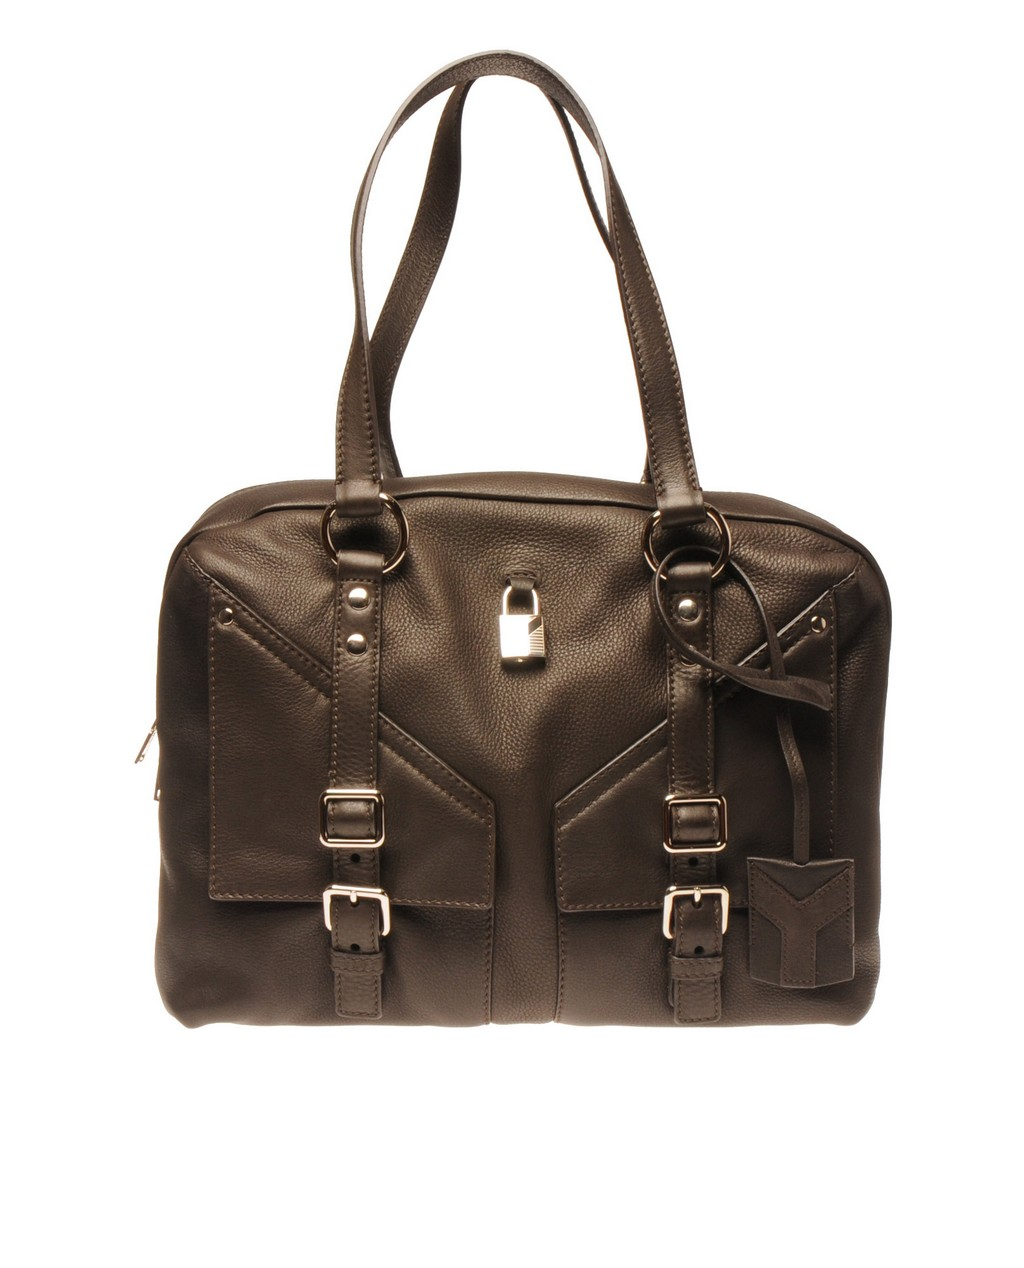 brown handbag guess handbags by marciano liz claiborne handbags